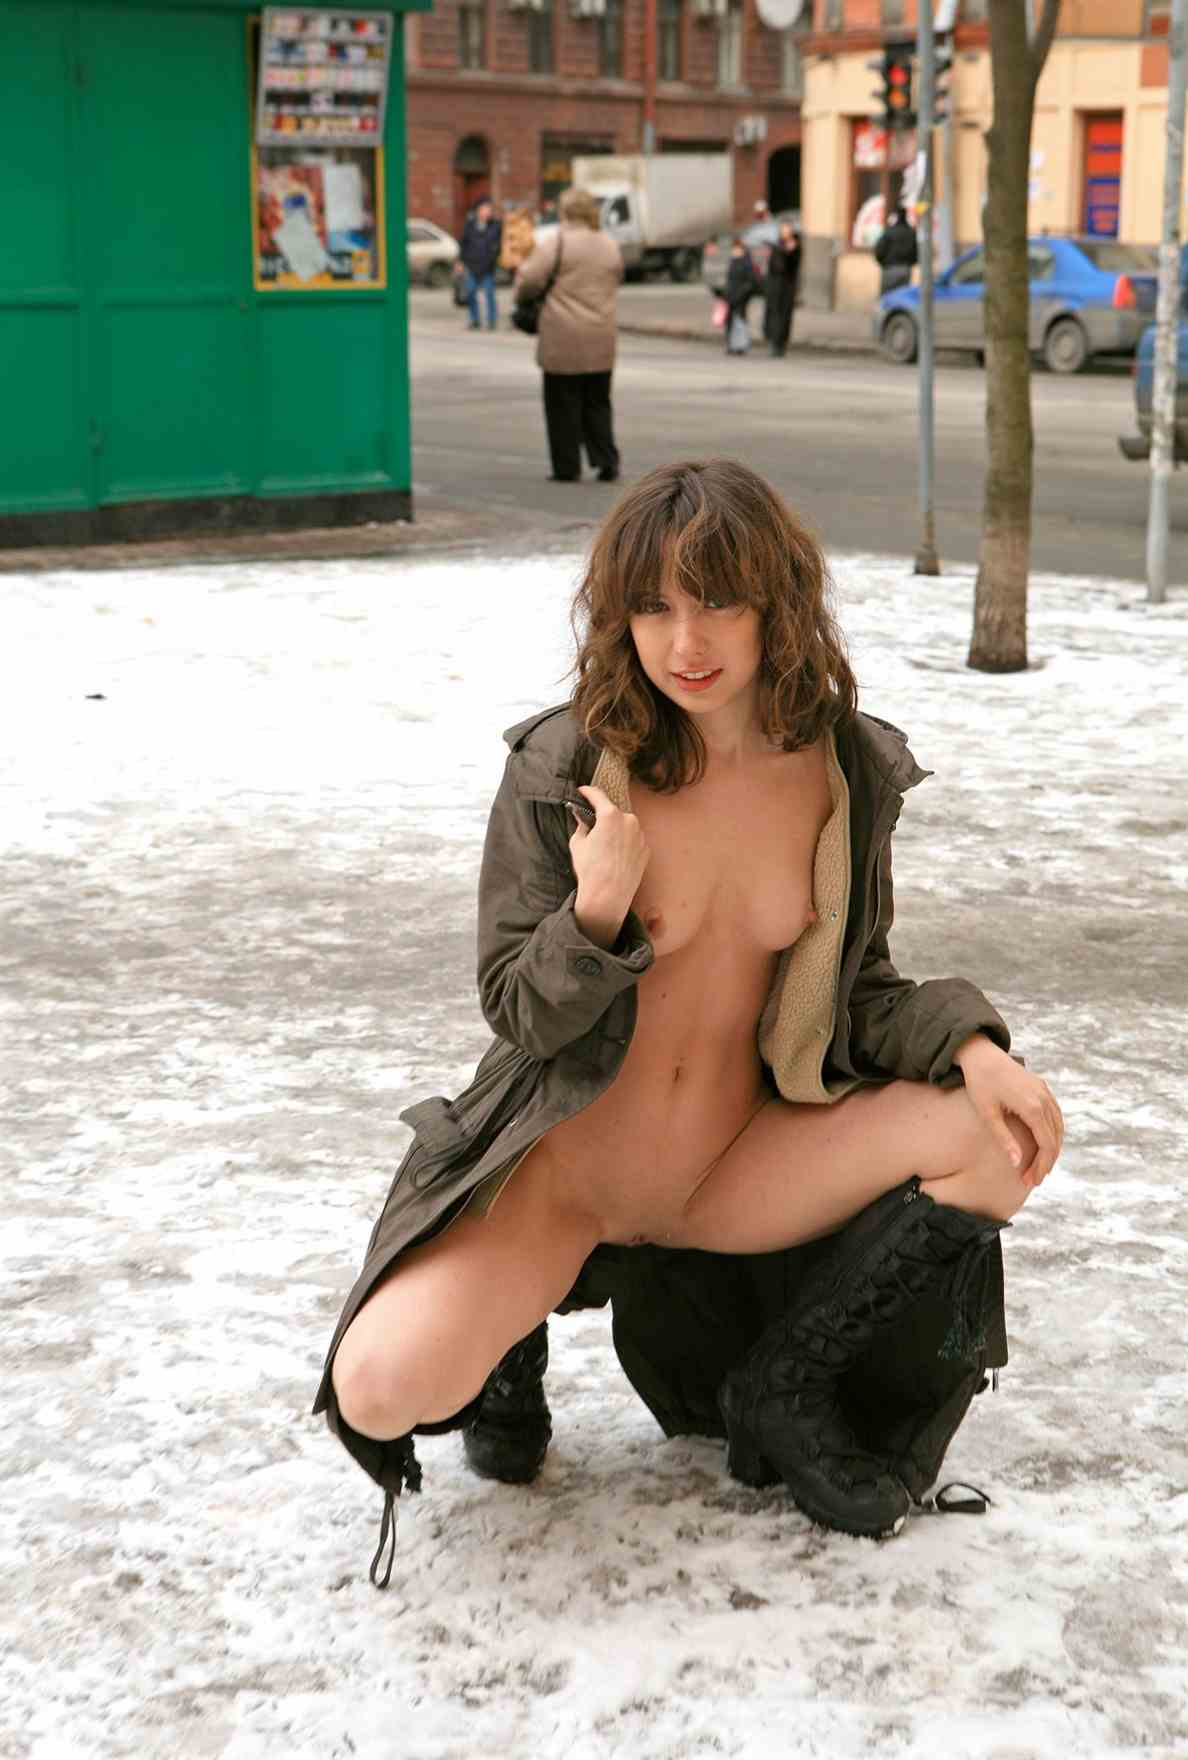 nude funny pic of young girls